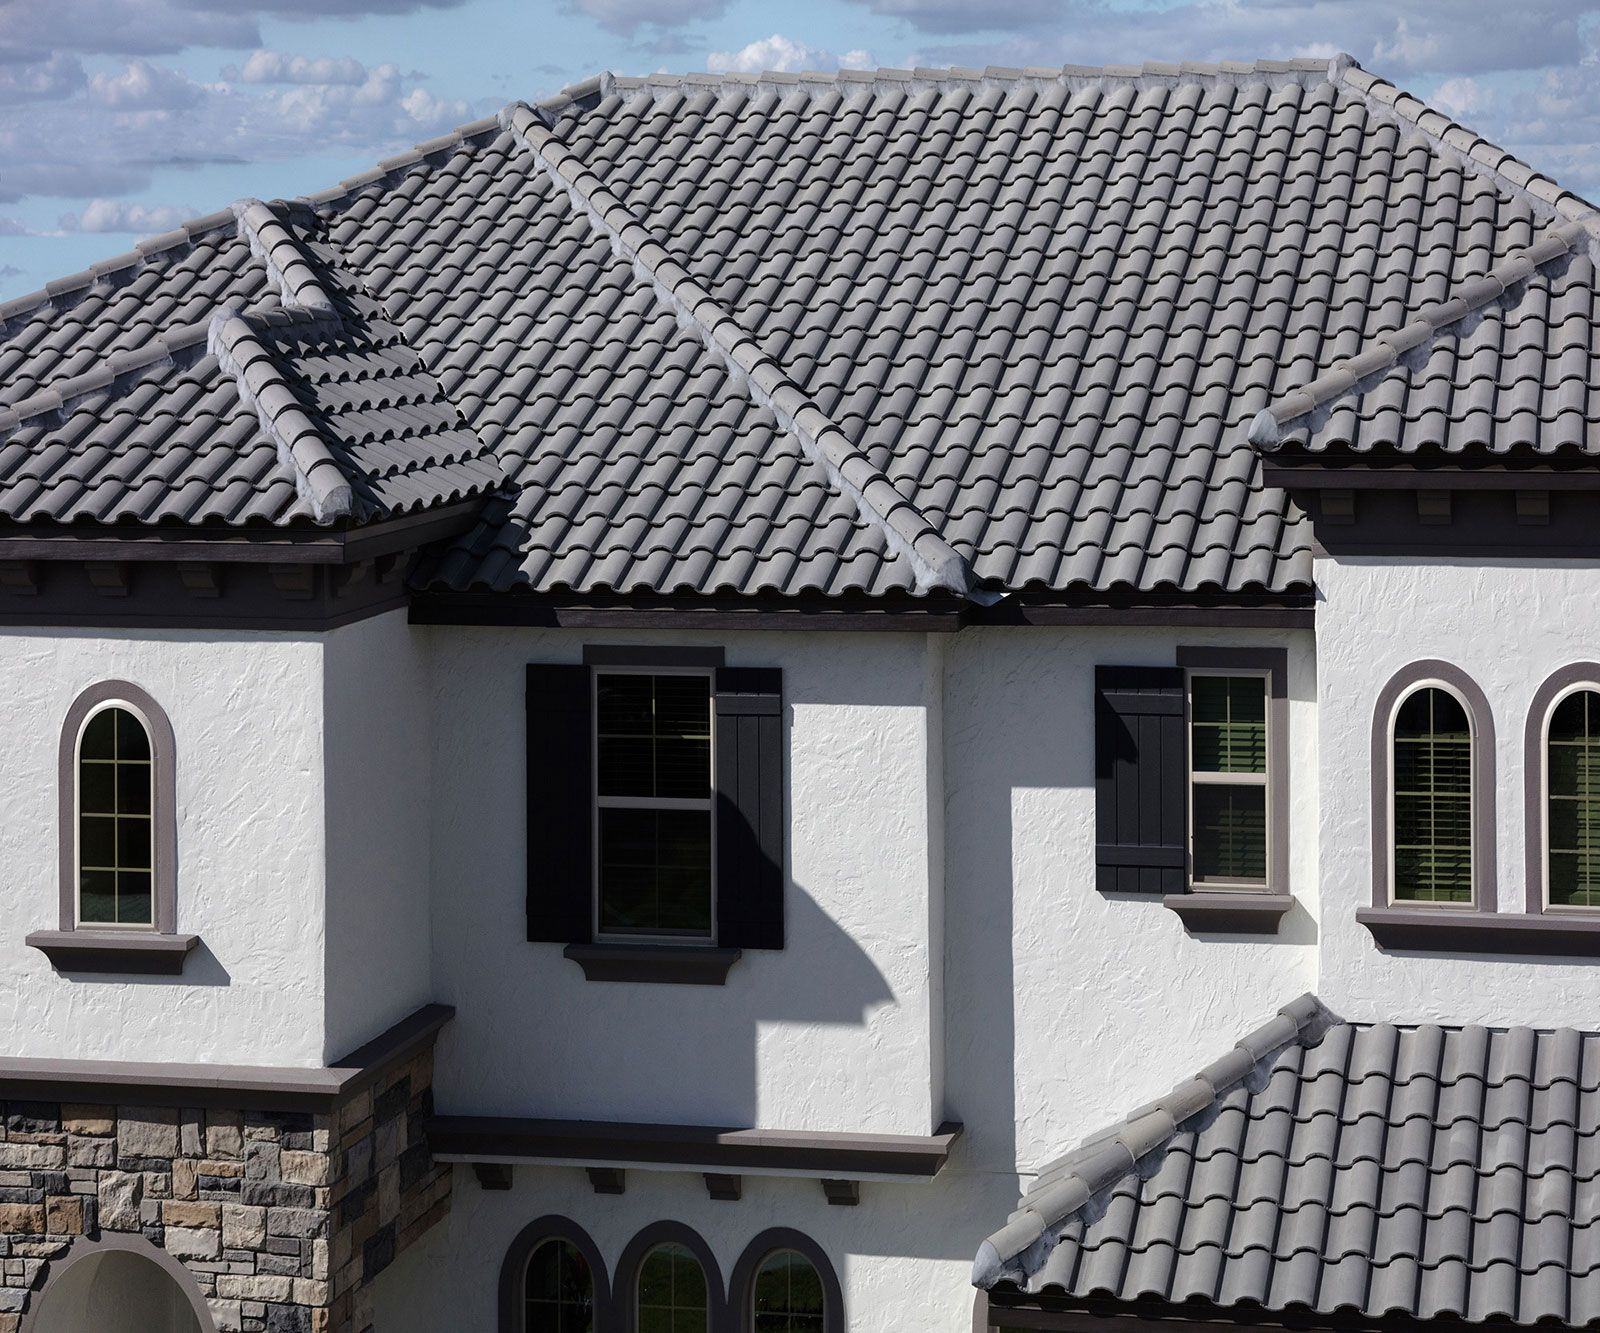 3679 Eagle Roofing House Roof Exterior House Color Spanish Tile Roof